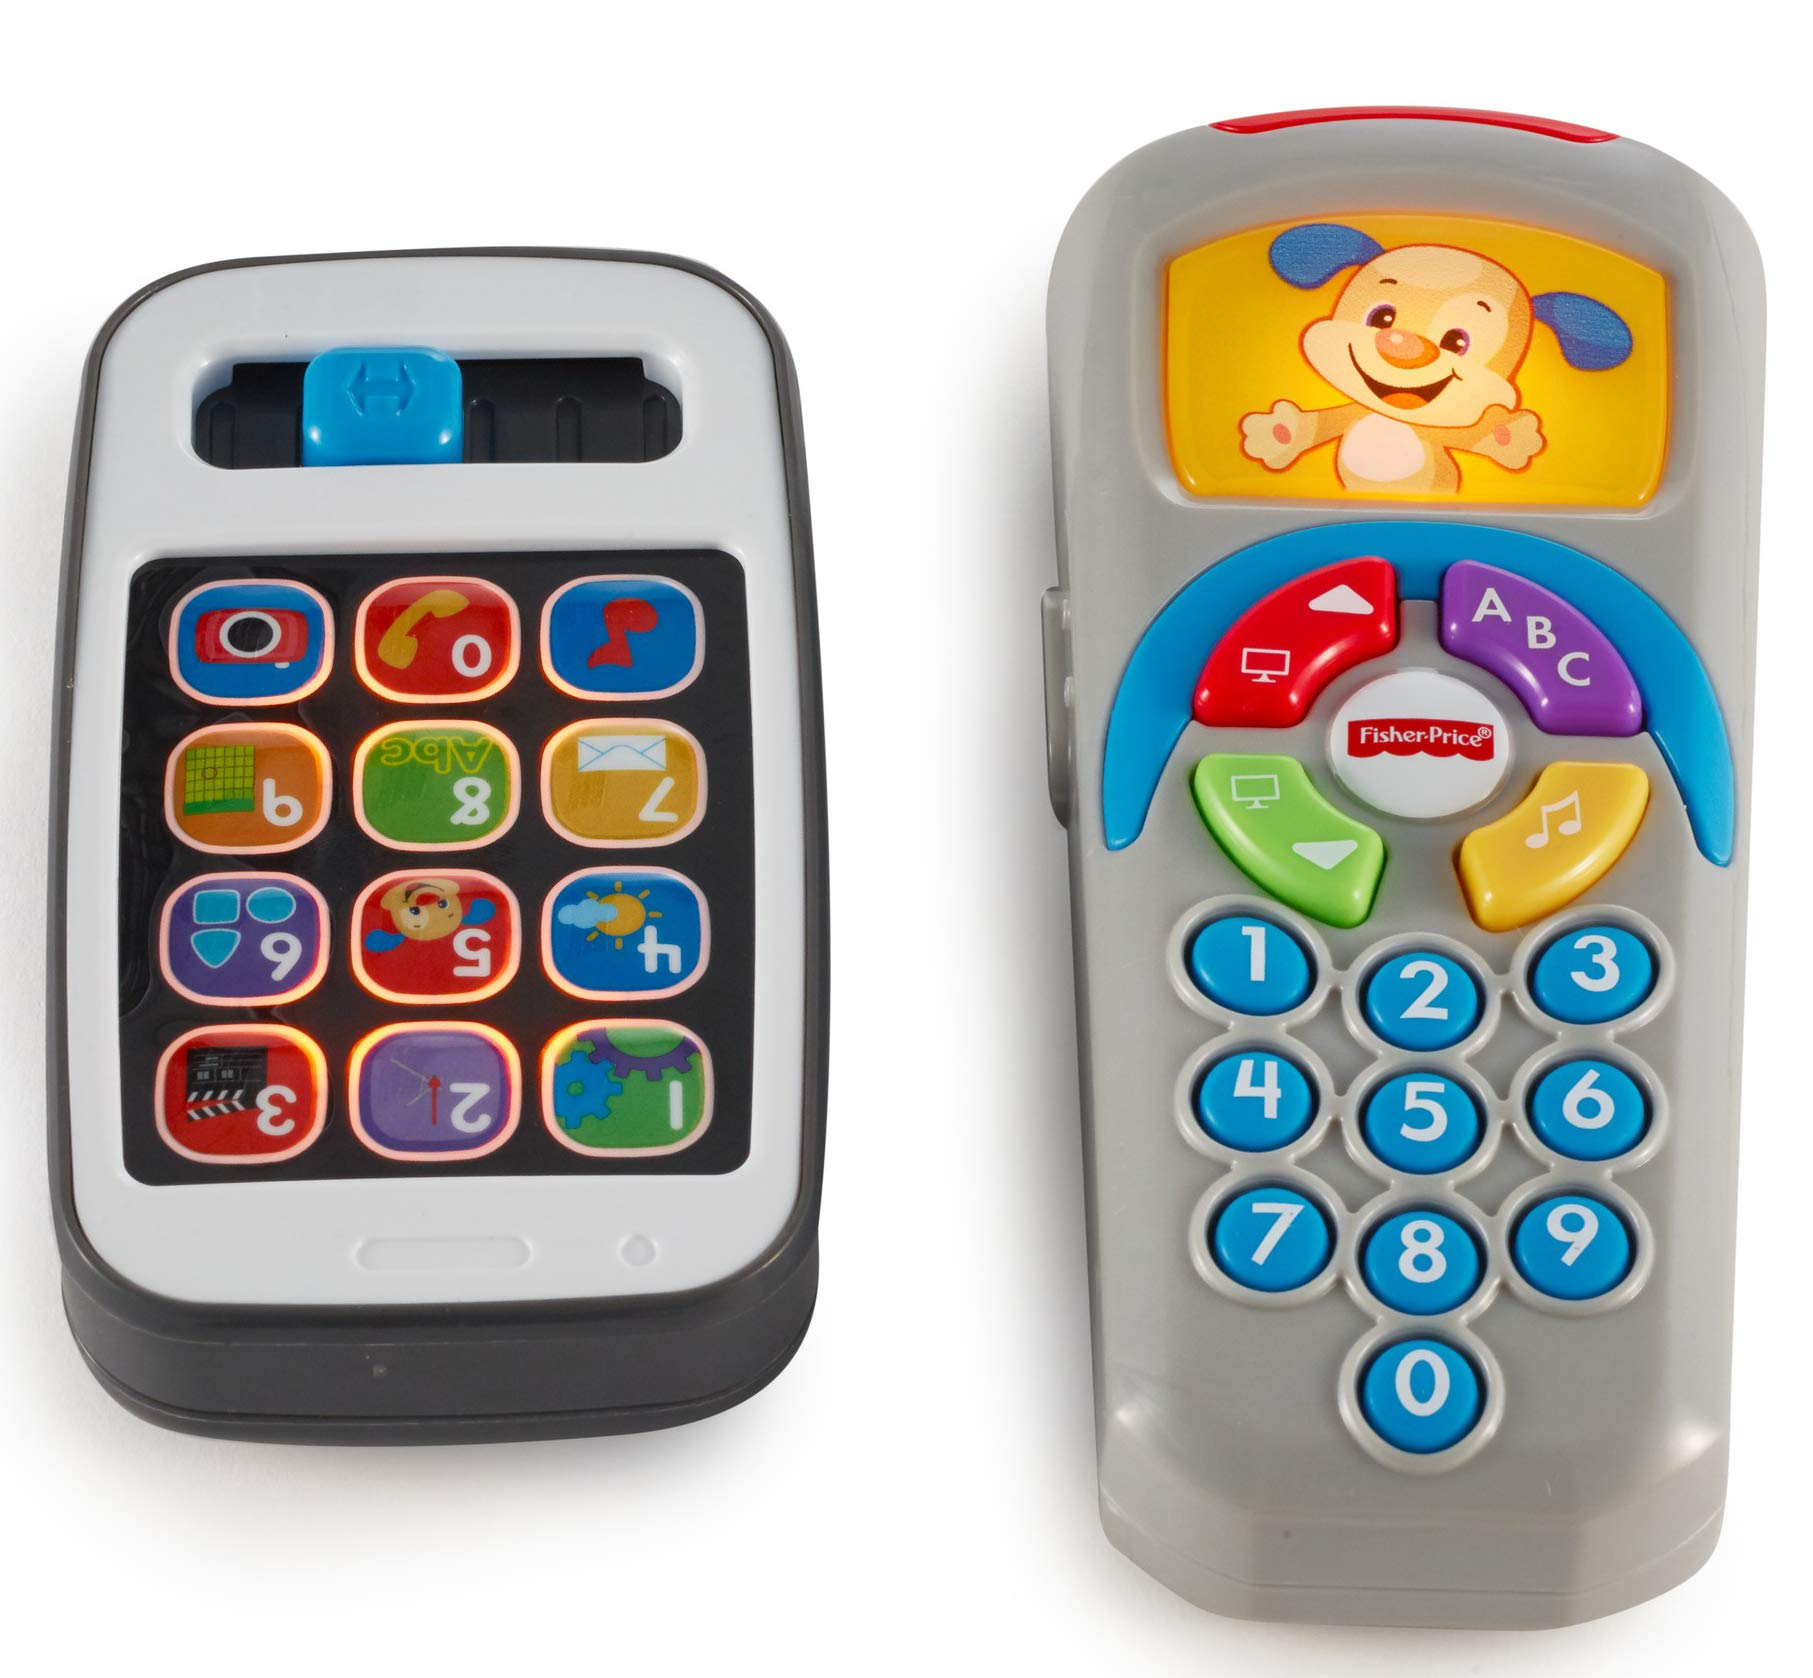 Fisher-Price Laugh & Learn Gift Set, Smartphone and Remote [Amazon Exclusive] by Fisher-Price